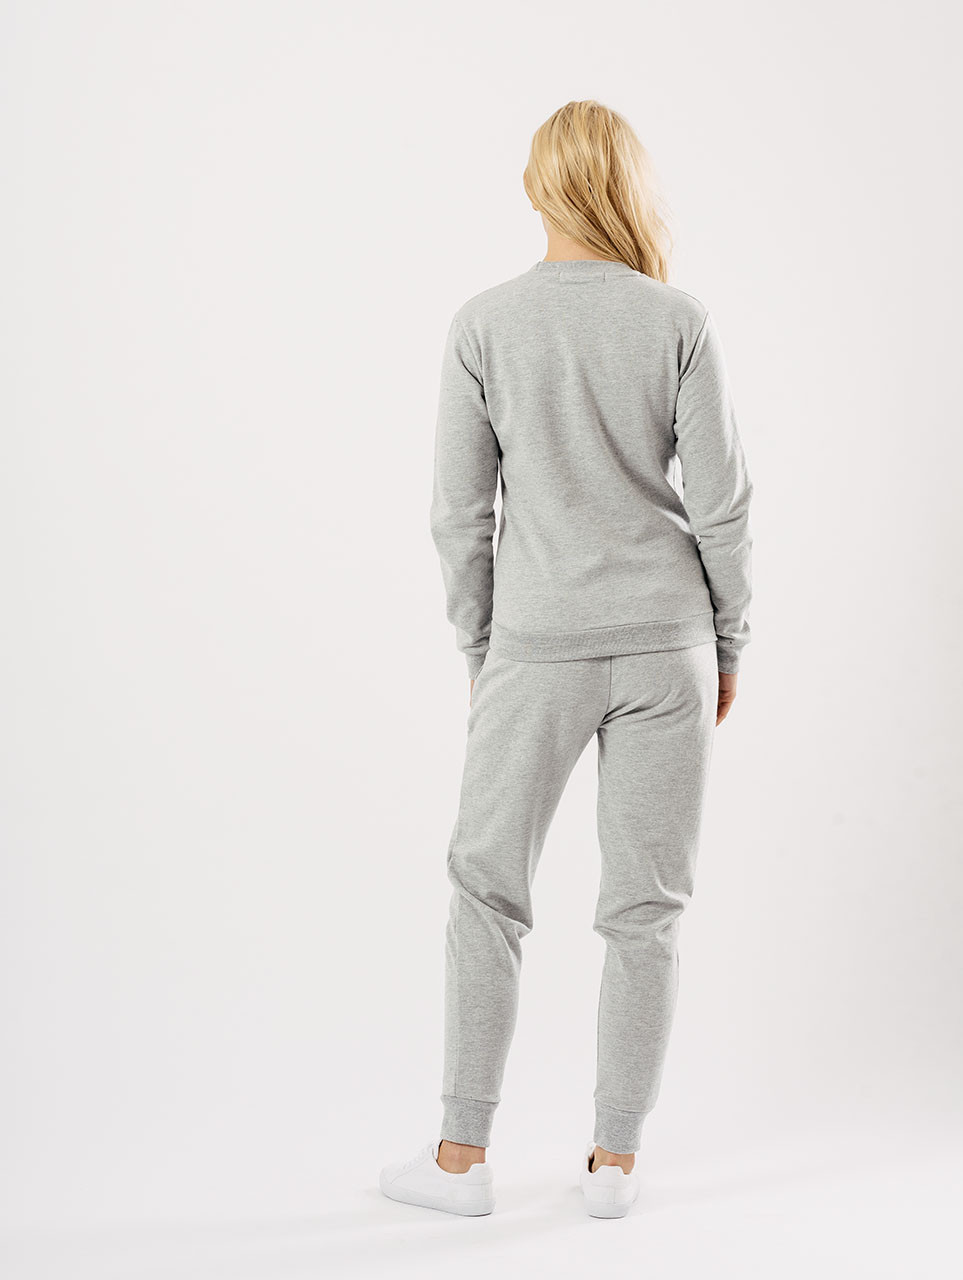 Grey Embroidered Lounge Wear Suit Sets